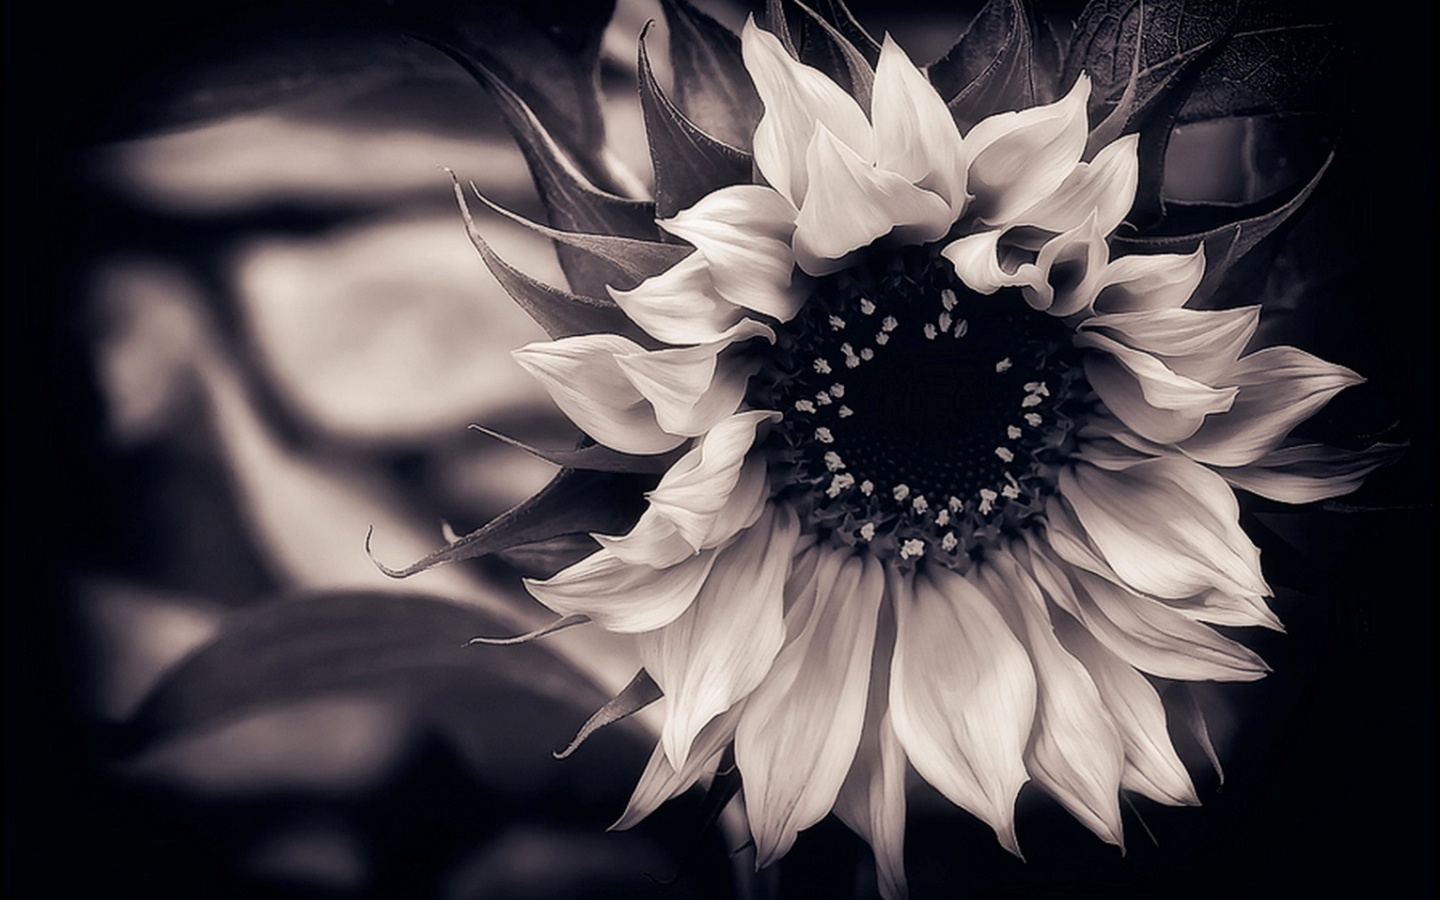 Black and white floral wallpaper 16 free hd wallpaper black and white floral wallpaper 16 free hd wallpaper mightylinksfo